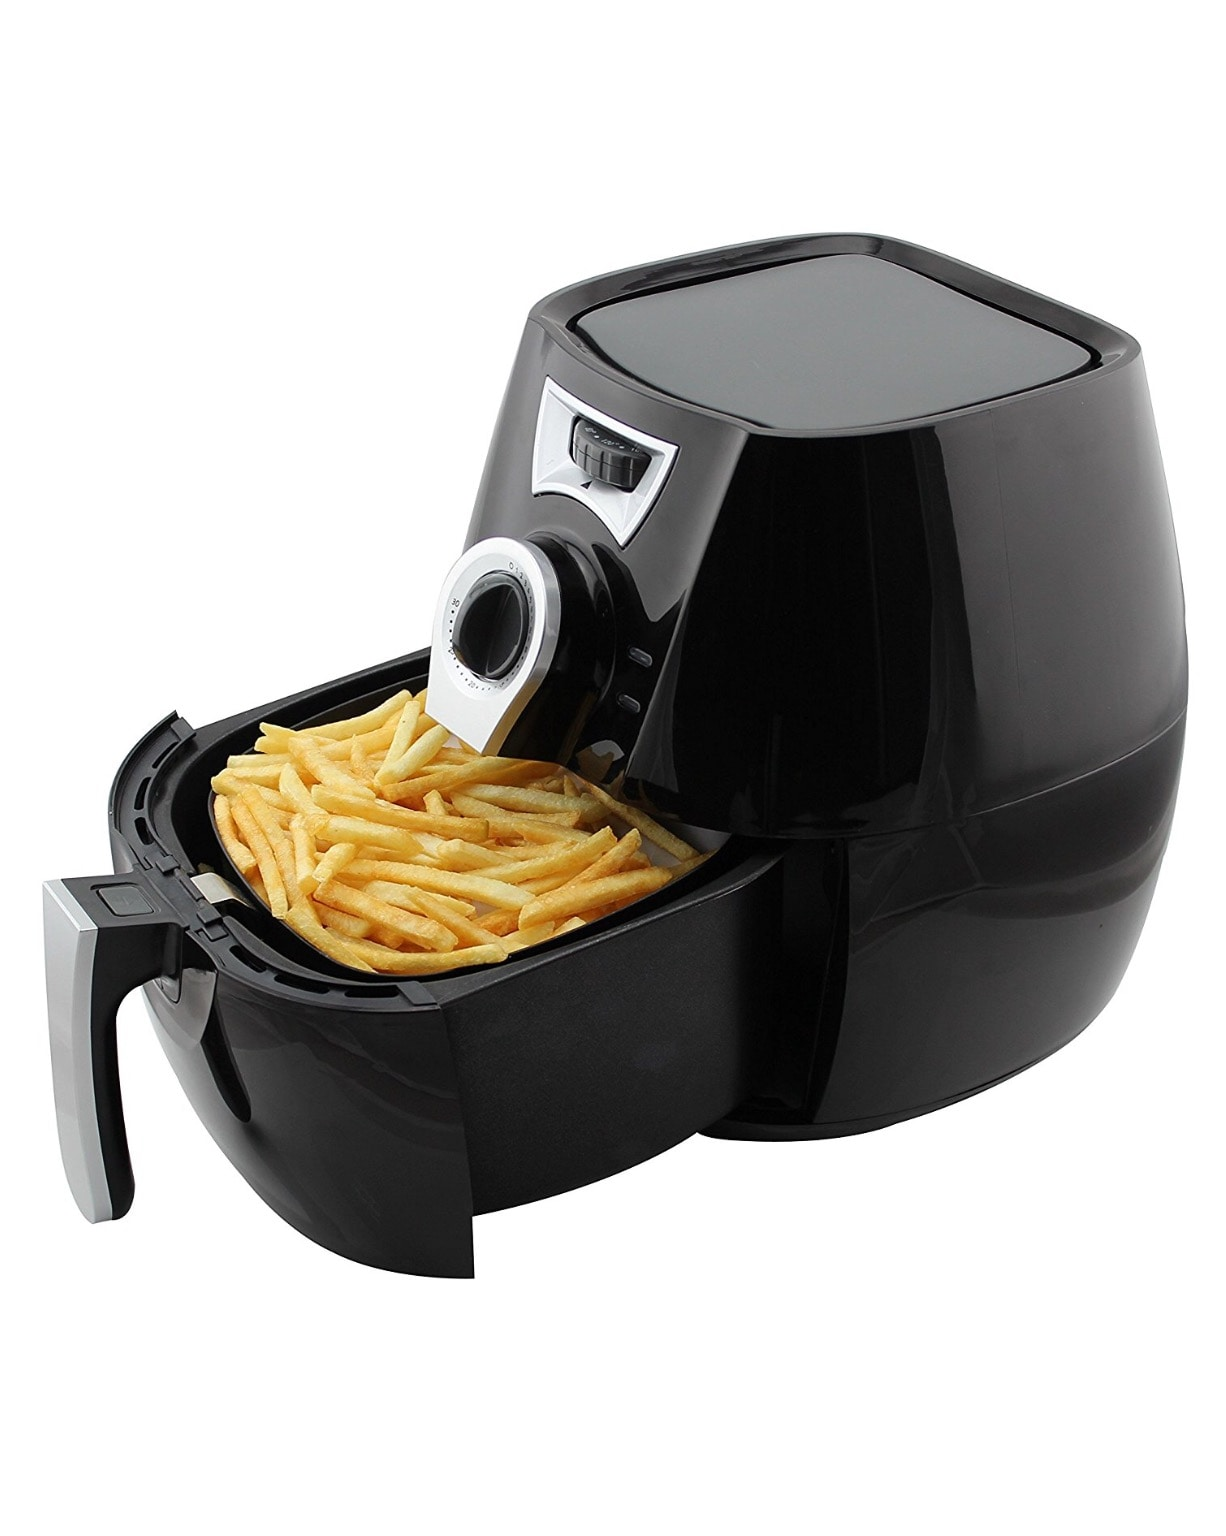 Electric Oil Free Air Fryer Multifunction Programmable Timer,Temperature Control Detachable Basket Air Fryers With Receipts-Black